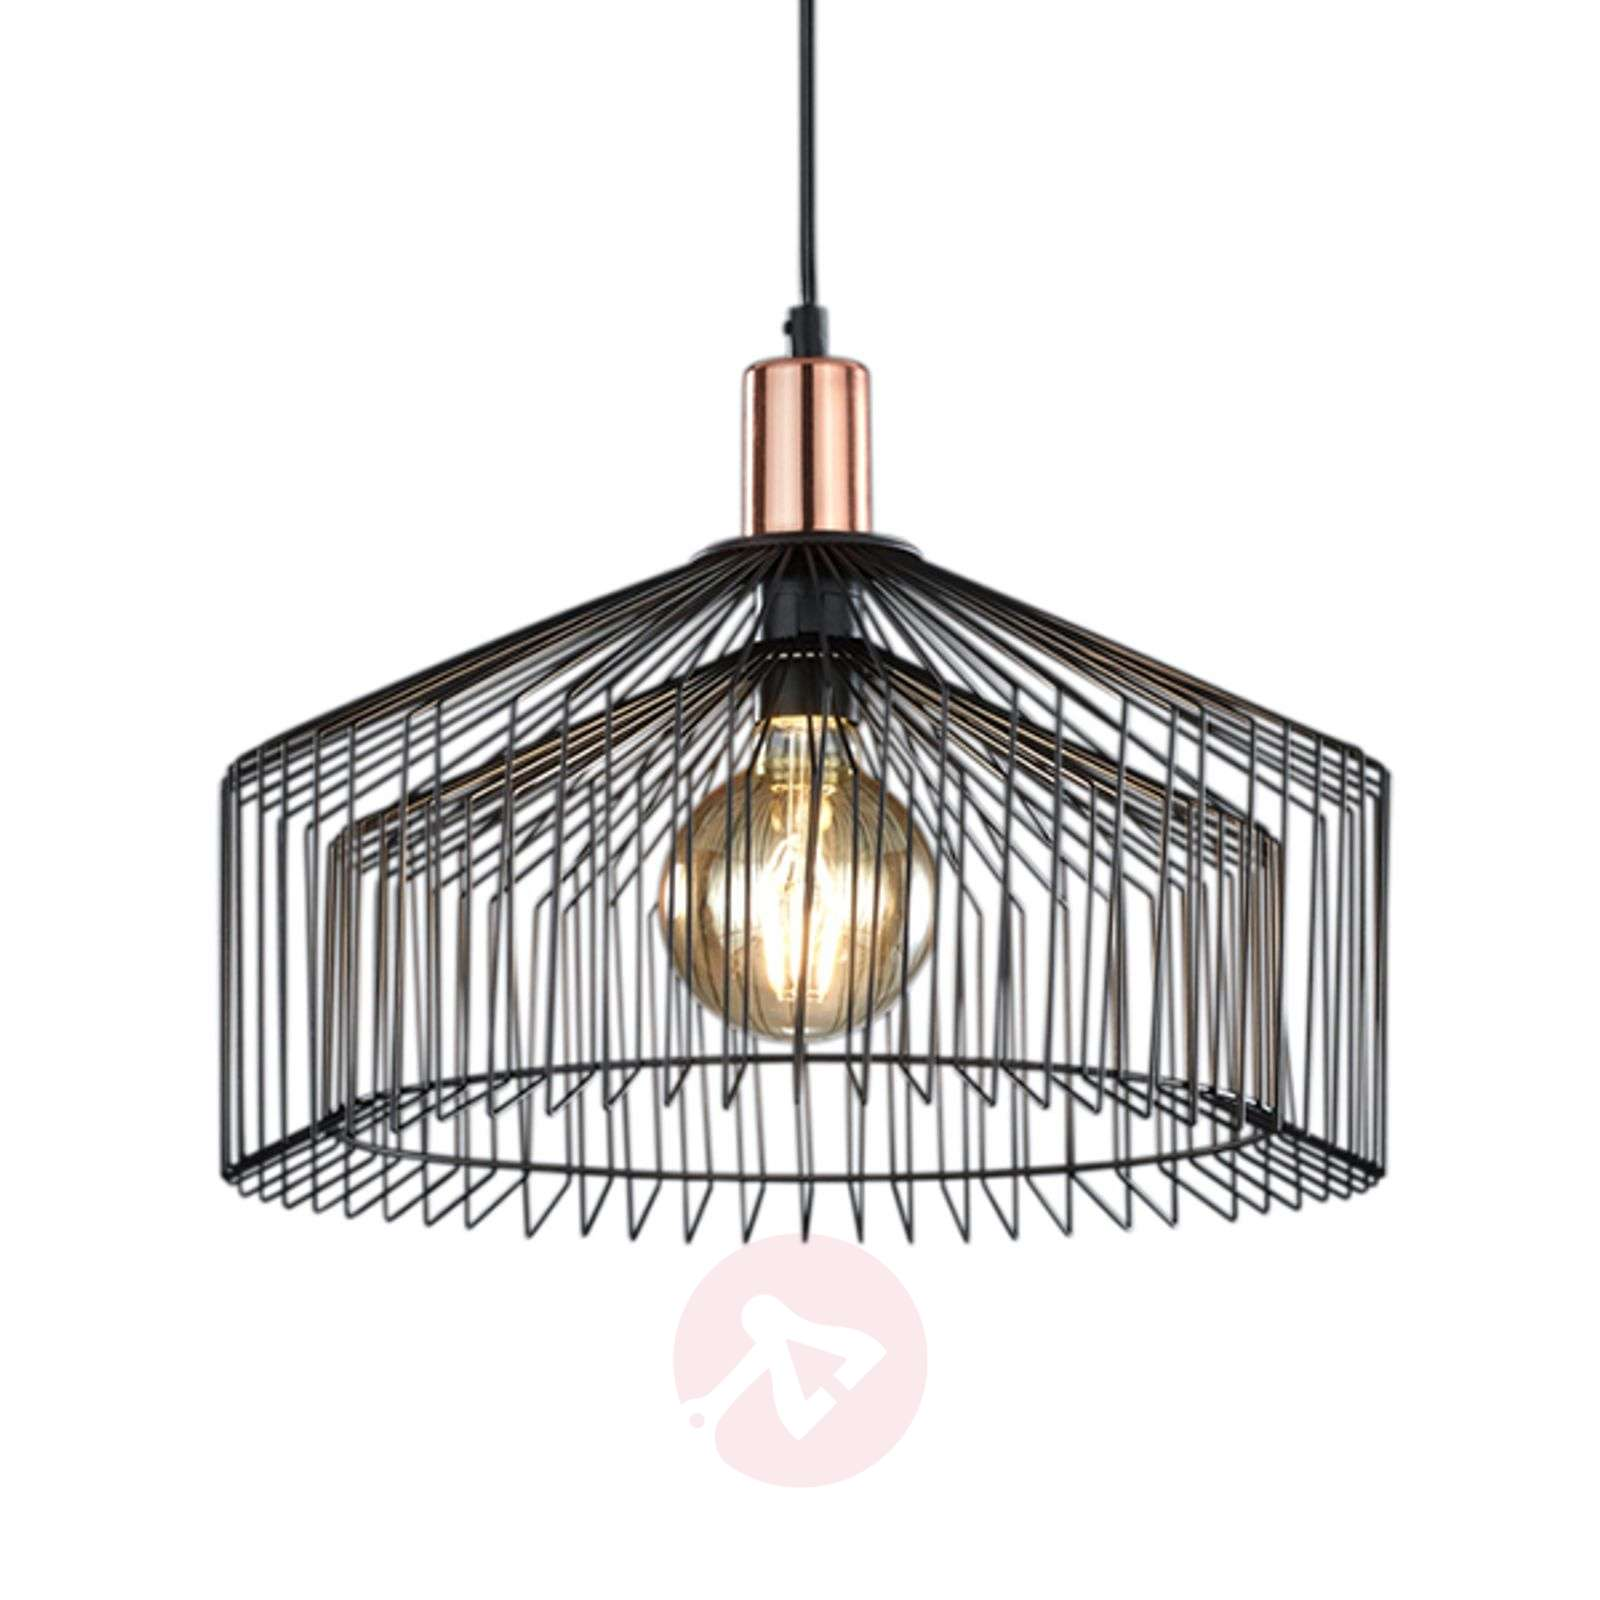 with metal and holder lampshades bulb white apollo lampshade cages light xl naked shade cage lamp